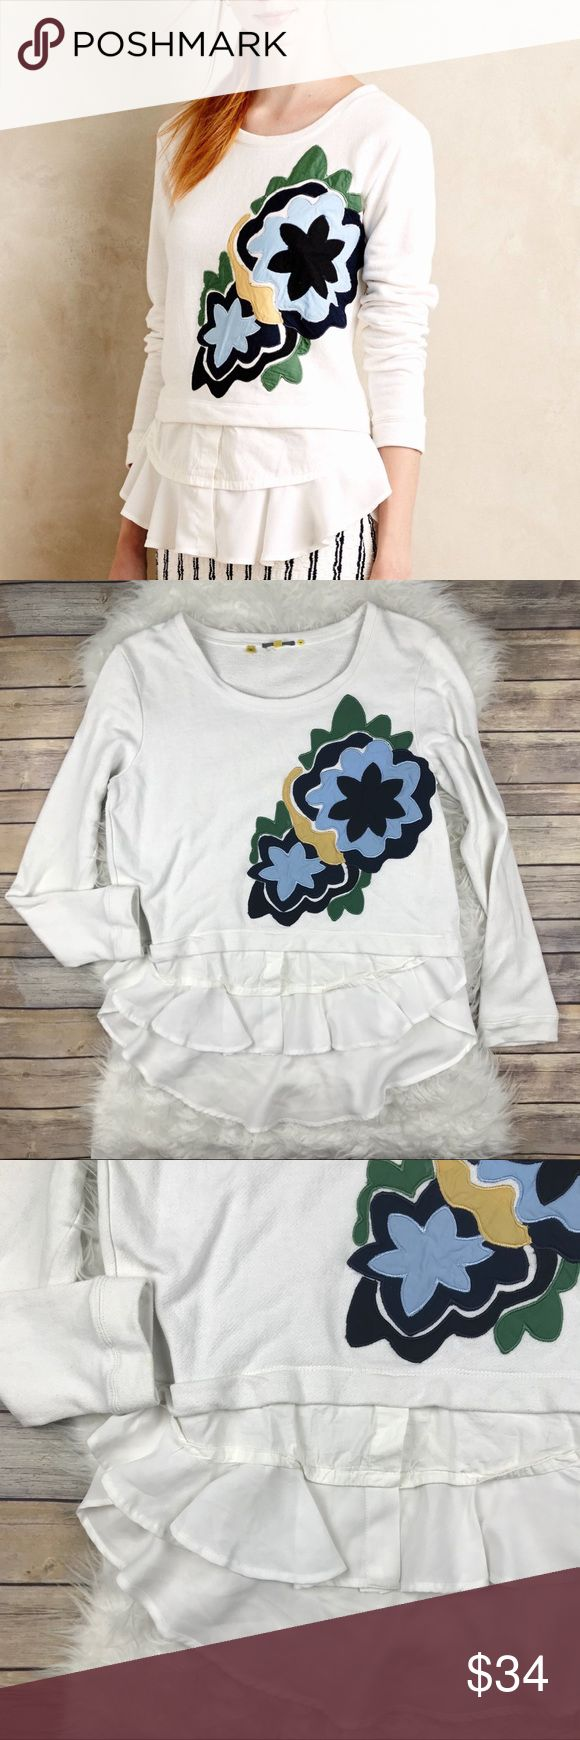 """Anthropologie Rosalie Tiered Appliqué Sweatshirt Good condition Anthropologie Little Yellow Button Rosalie Tiered Appliqué Sweatshirt. Size Medium. Stain on cuff, light wash wear. Shirttail hem peeks out from under a floral Appliqué Sweatshirt. 87% cotton, 13% polyester. Bust 43"""", length at front 26"""", length at back 30.5"""", sleeve length 25"""". White. High/low hemline. No trades, offers welcome. Anthropologie Tops Sweatshirts & Hoodies"""